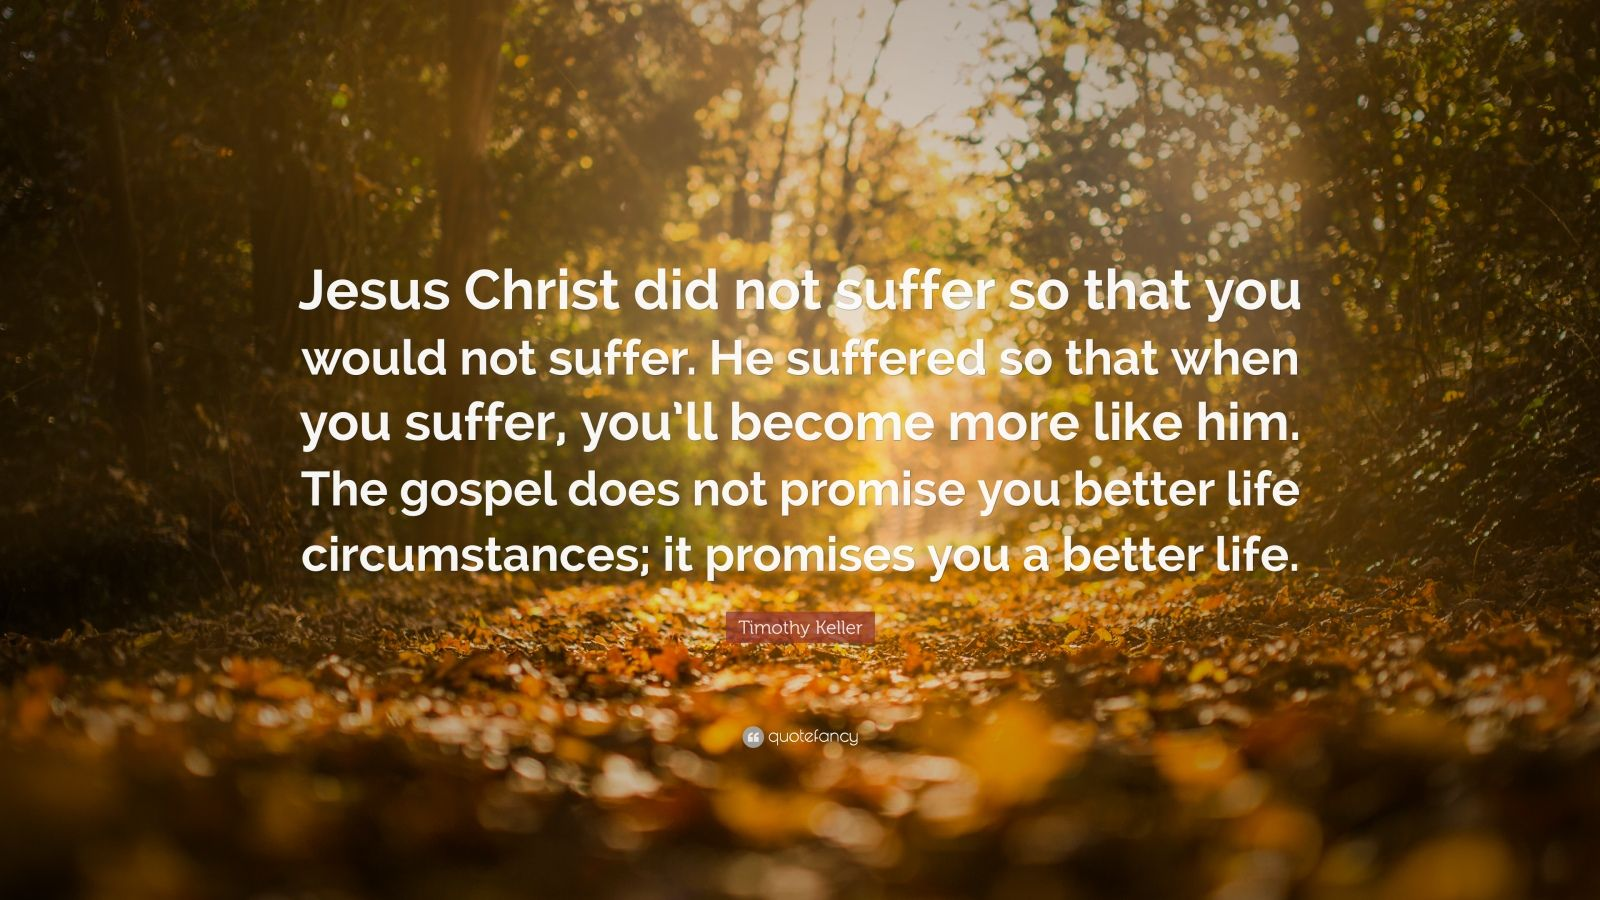 """Timothy Keller Quote: """"Jesus Christ did not suffer so that you would not suffer. He suffered so that when you suffer, you'll become more like him. The gospel does not promise you better life circumstances; it promises you a better life."""""""